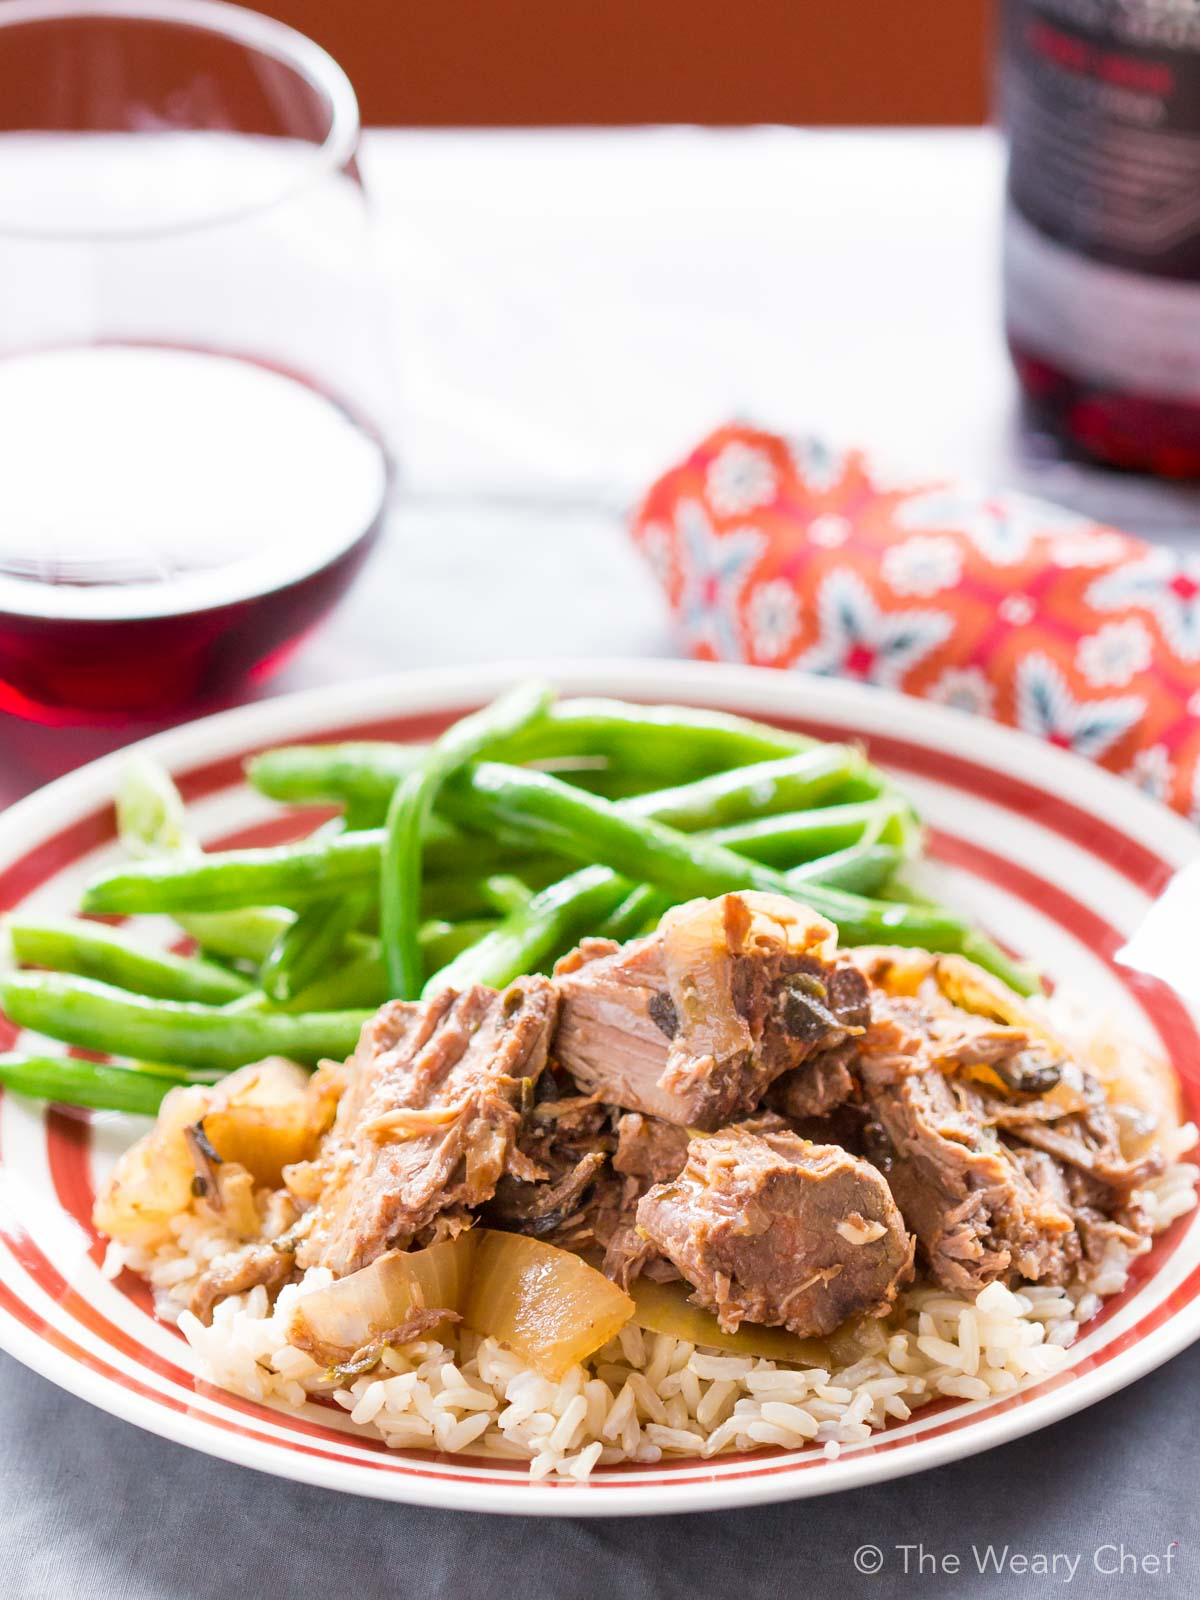 This slow cooker pot roast is LOADED with garlic and onion flavor!